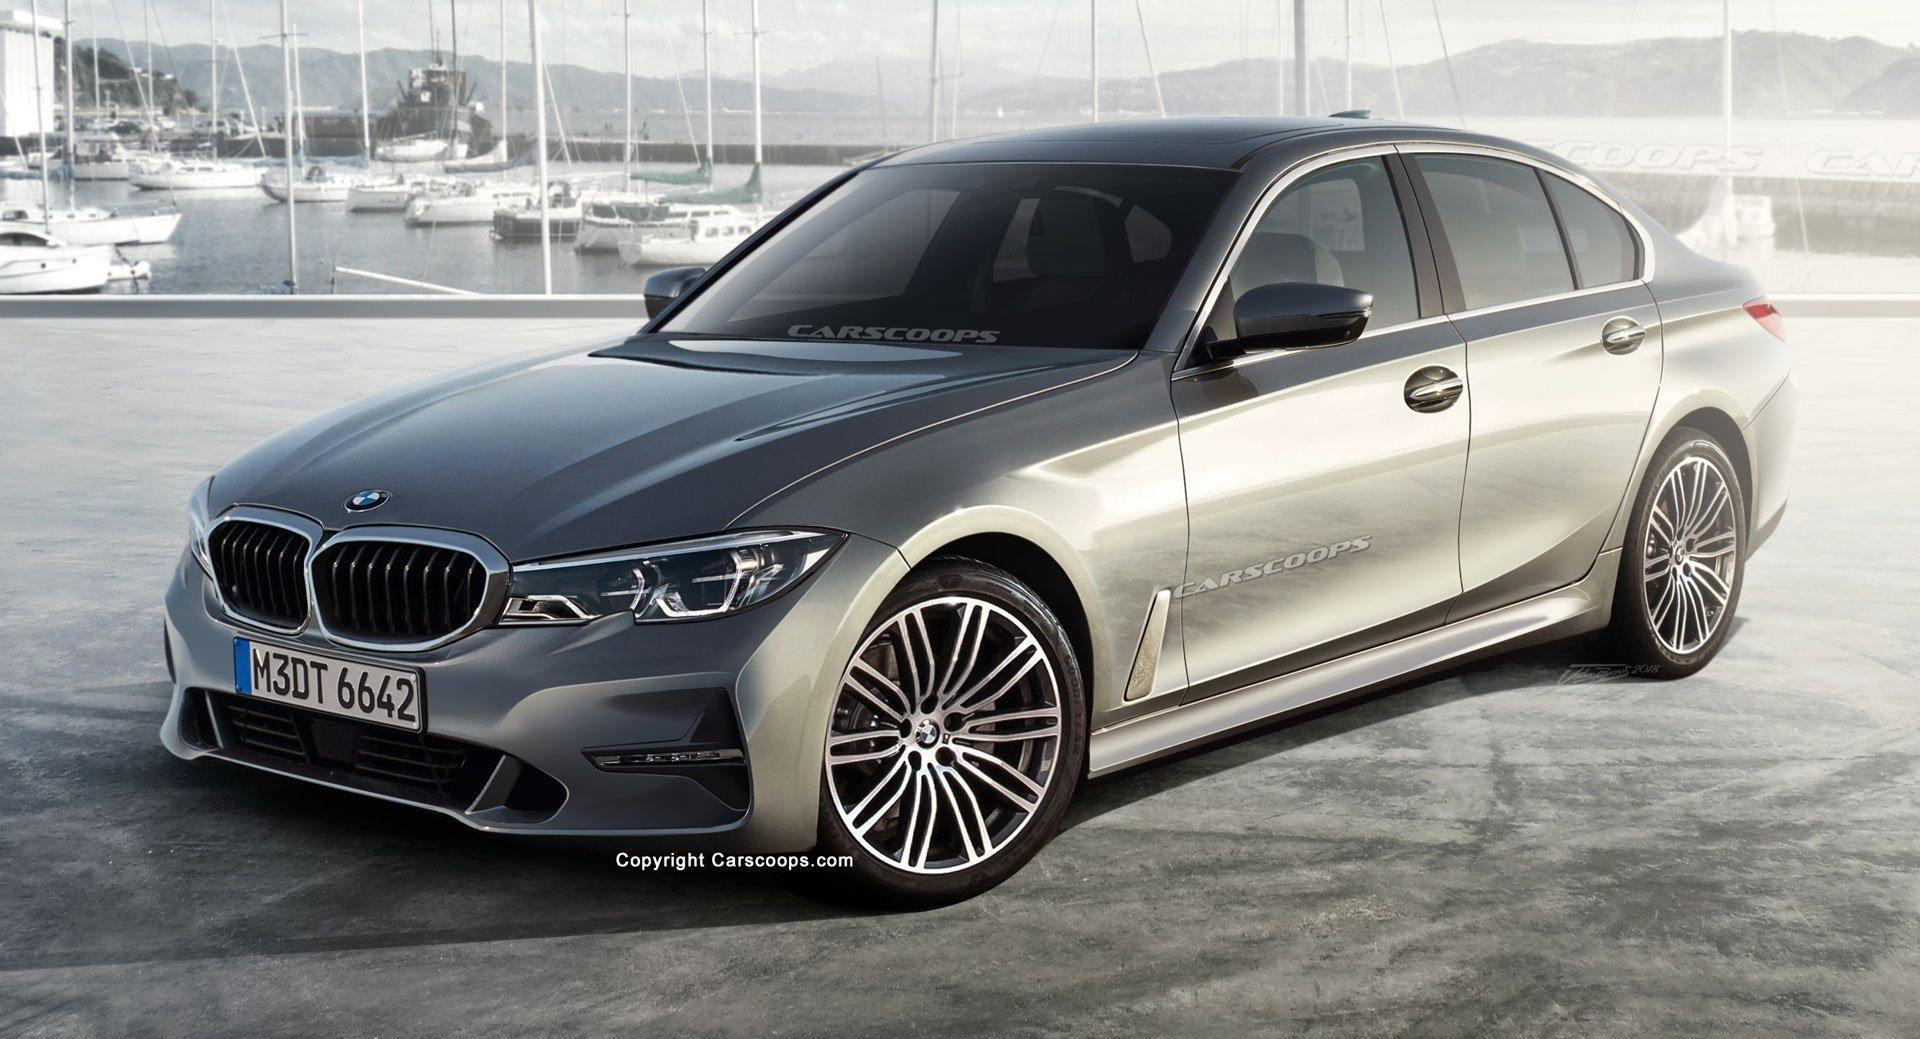 when will Bmw 3er 2019 be released